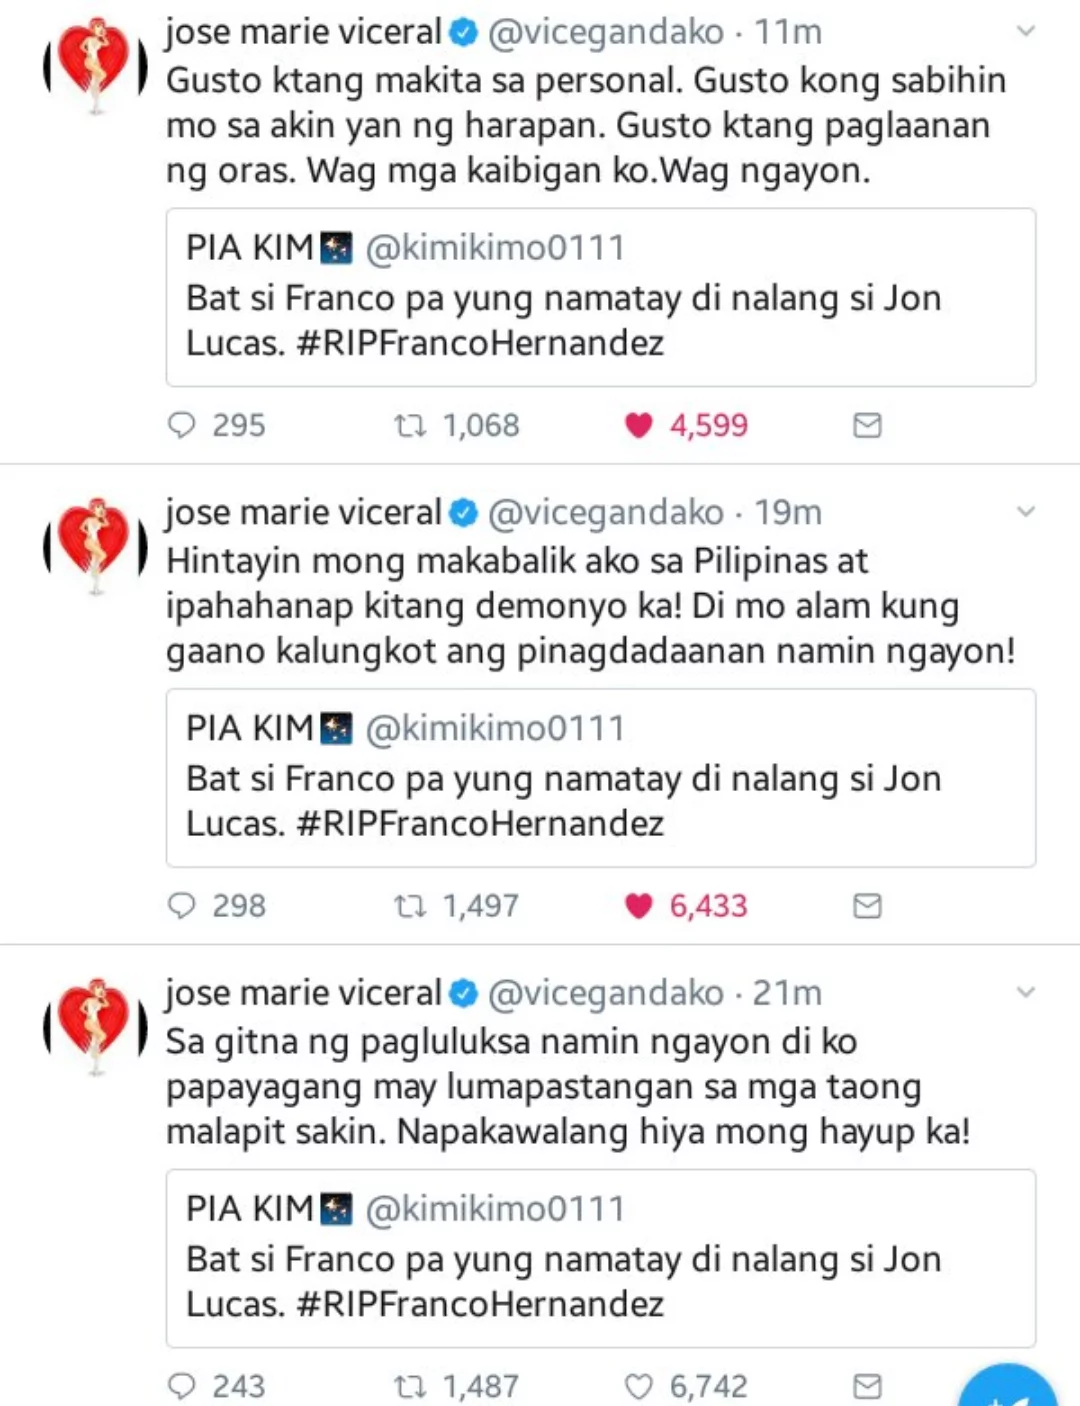 Vice Ganda claims that he knows all the basic info about the netizen who wished Jon Lucas dead instead of Franco